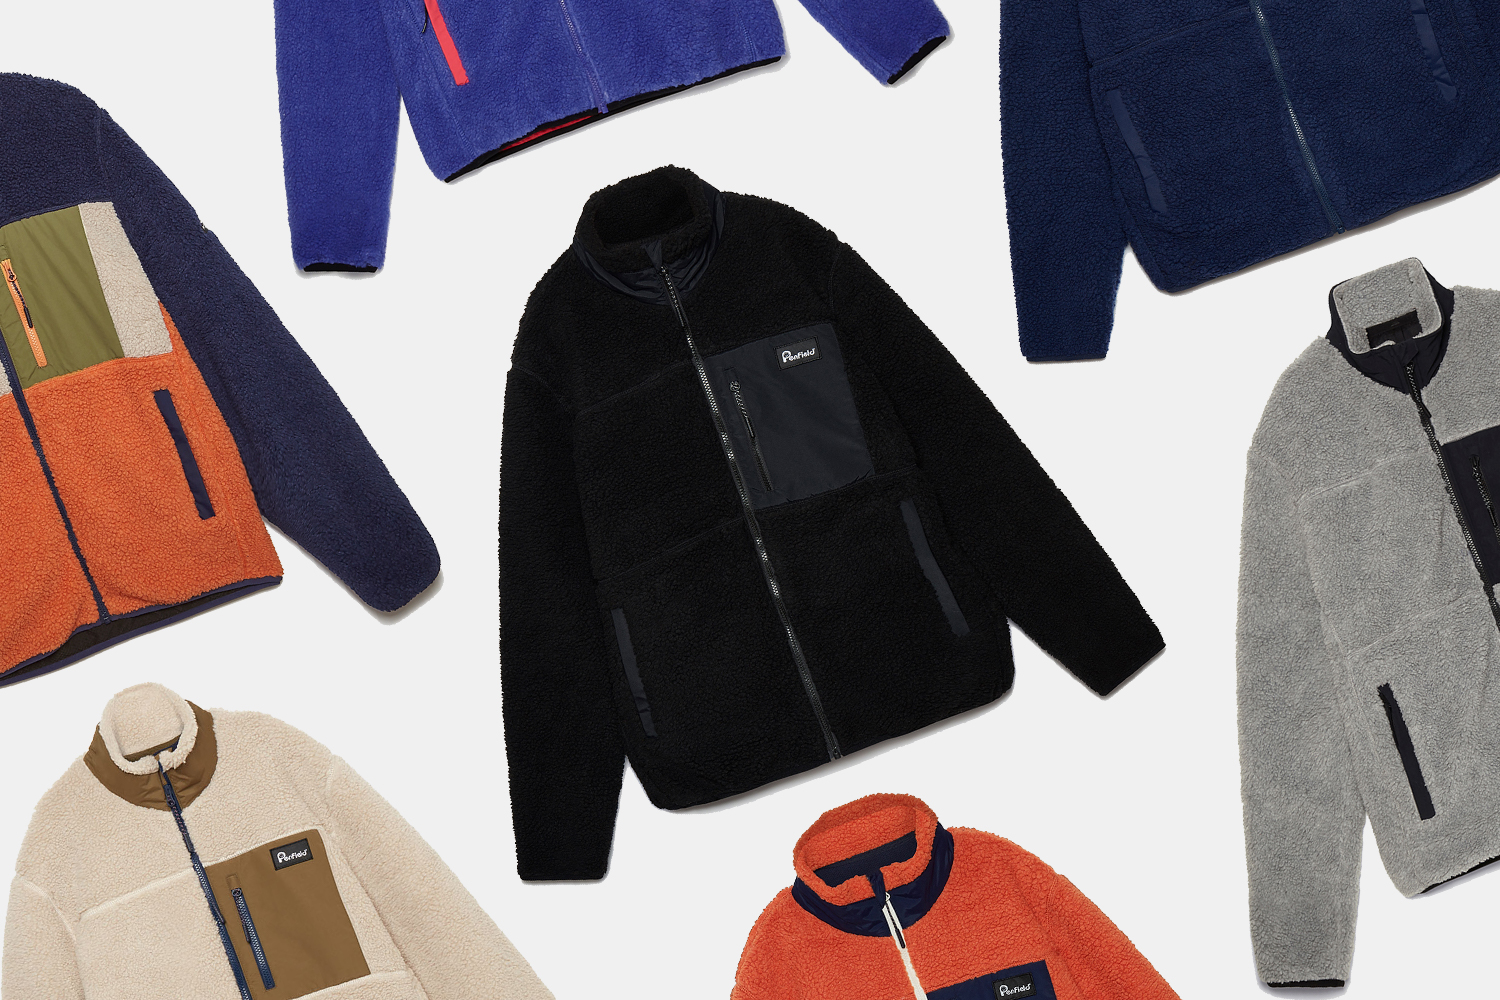 Penfield Sherpa Fleece Jackets Are Almost $100 Off InsideHook